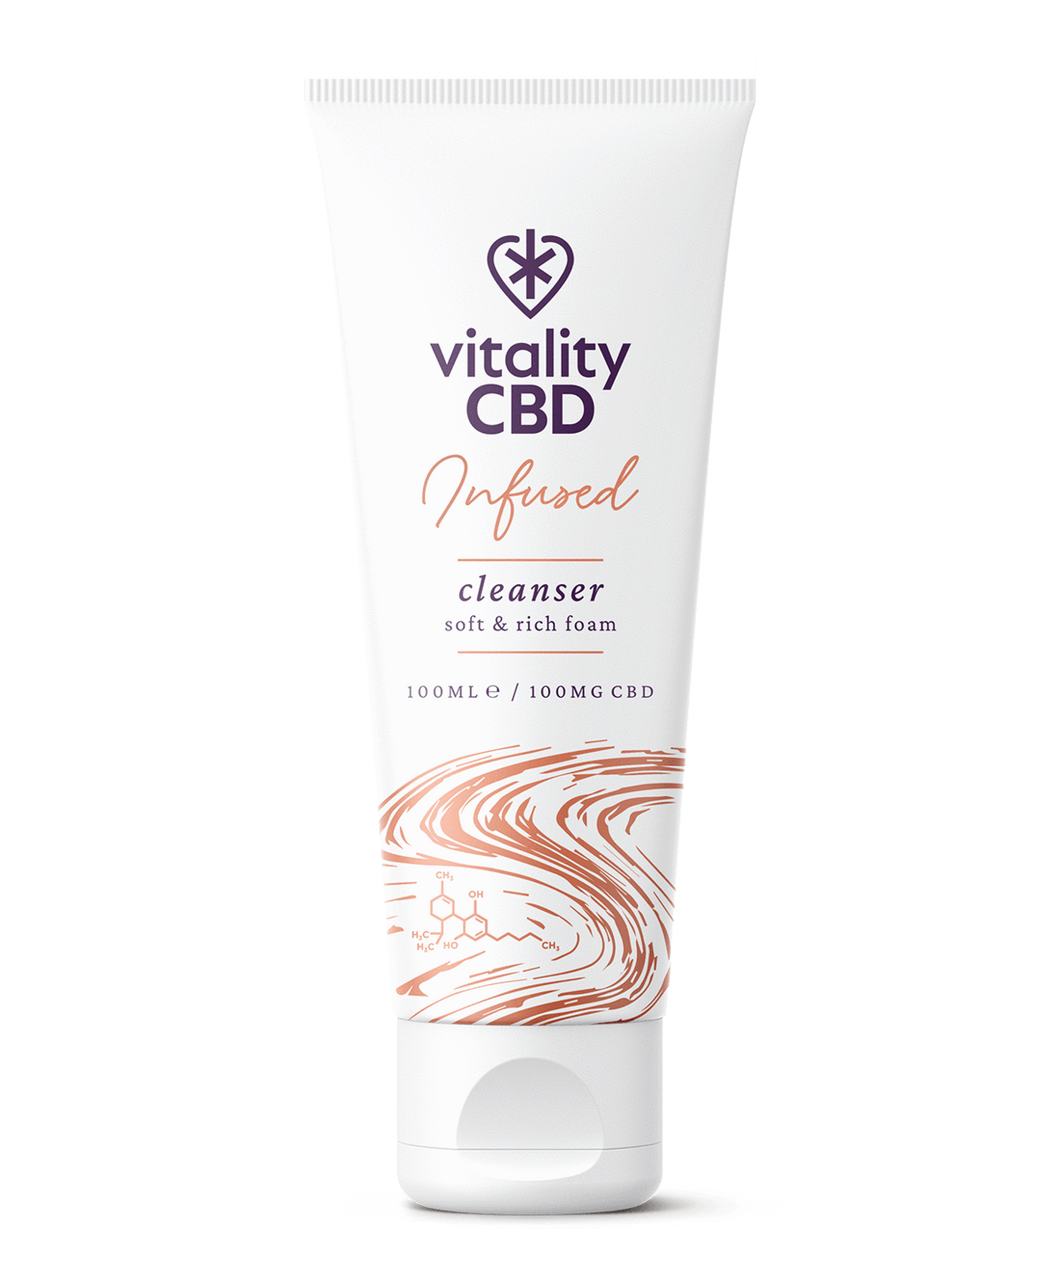 Vitality CBD Infused Cleanser